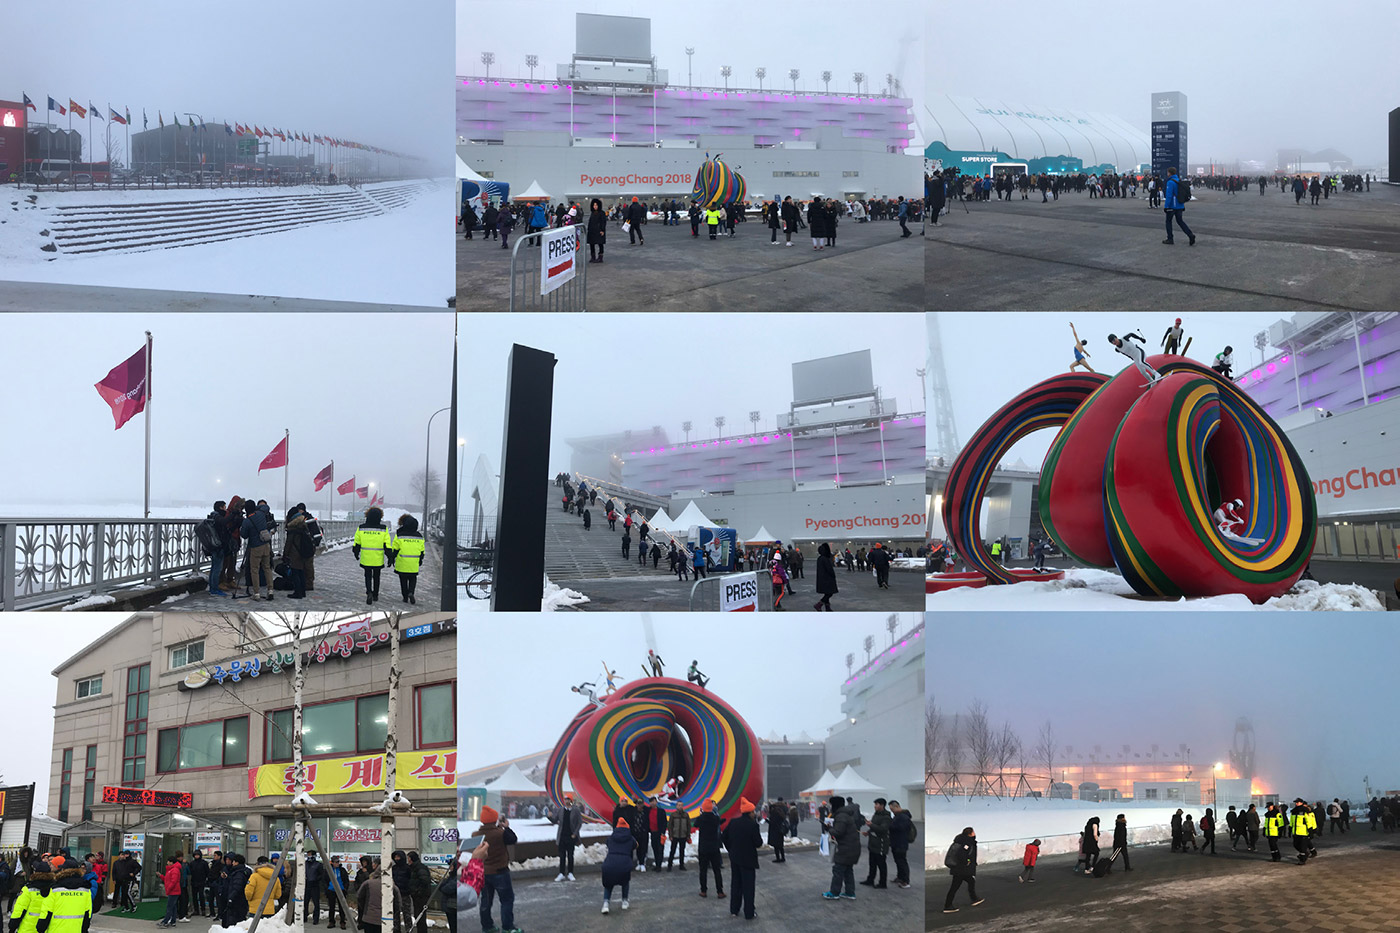 PyeongChang Paralympics 2018 Photo Montage 2 - Olympic Stadium Site